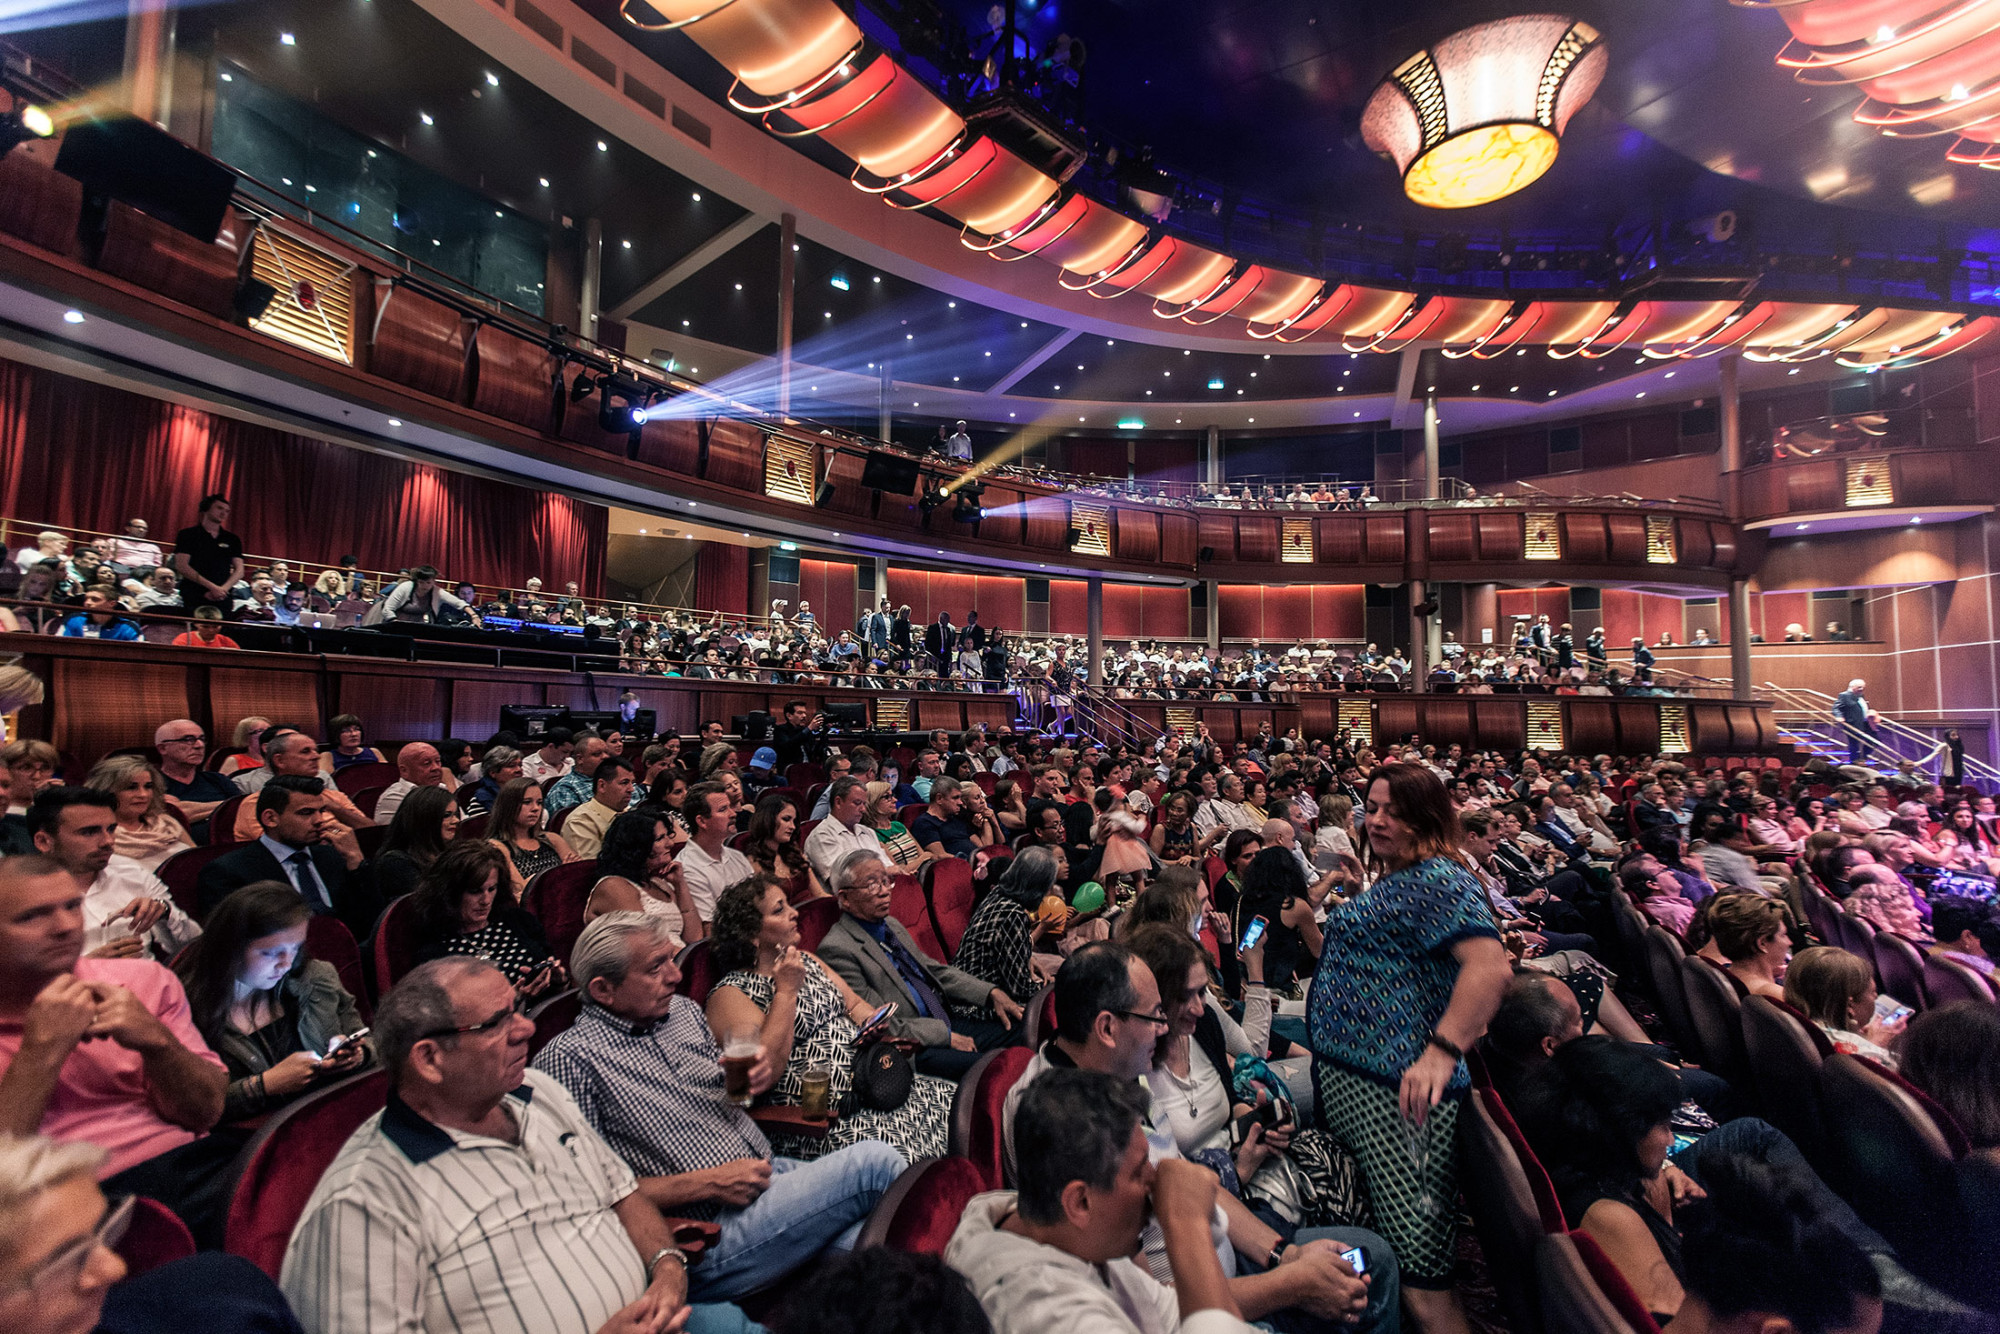 Royal Caribbean, Harmony of the Seas, The Royal Theater,Harmony'smain theater and largest entertainment venue, is a state-of-the-art theater designed with the latest technology to deliver an immersive performance environment that rivals land-based theaters. Seating 1,380 guests